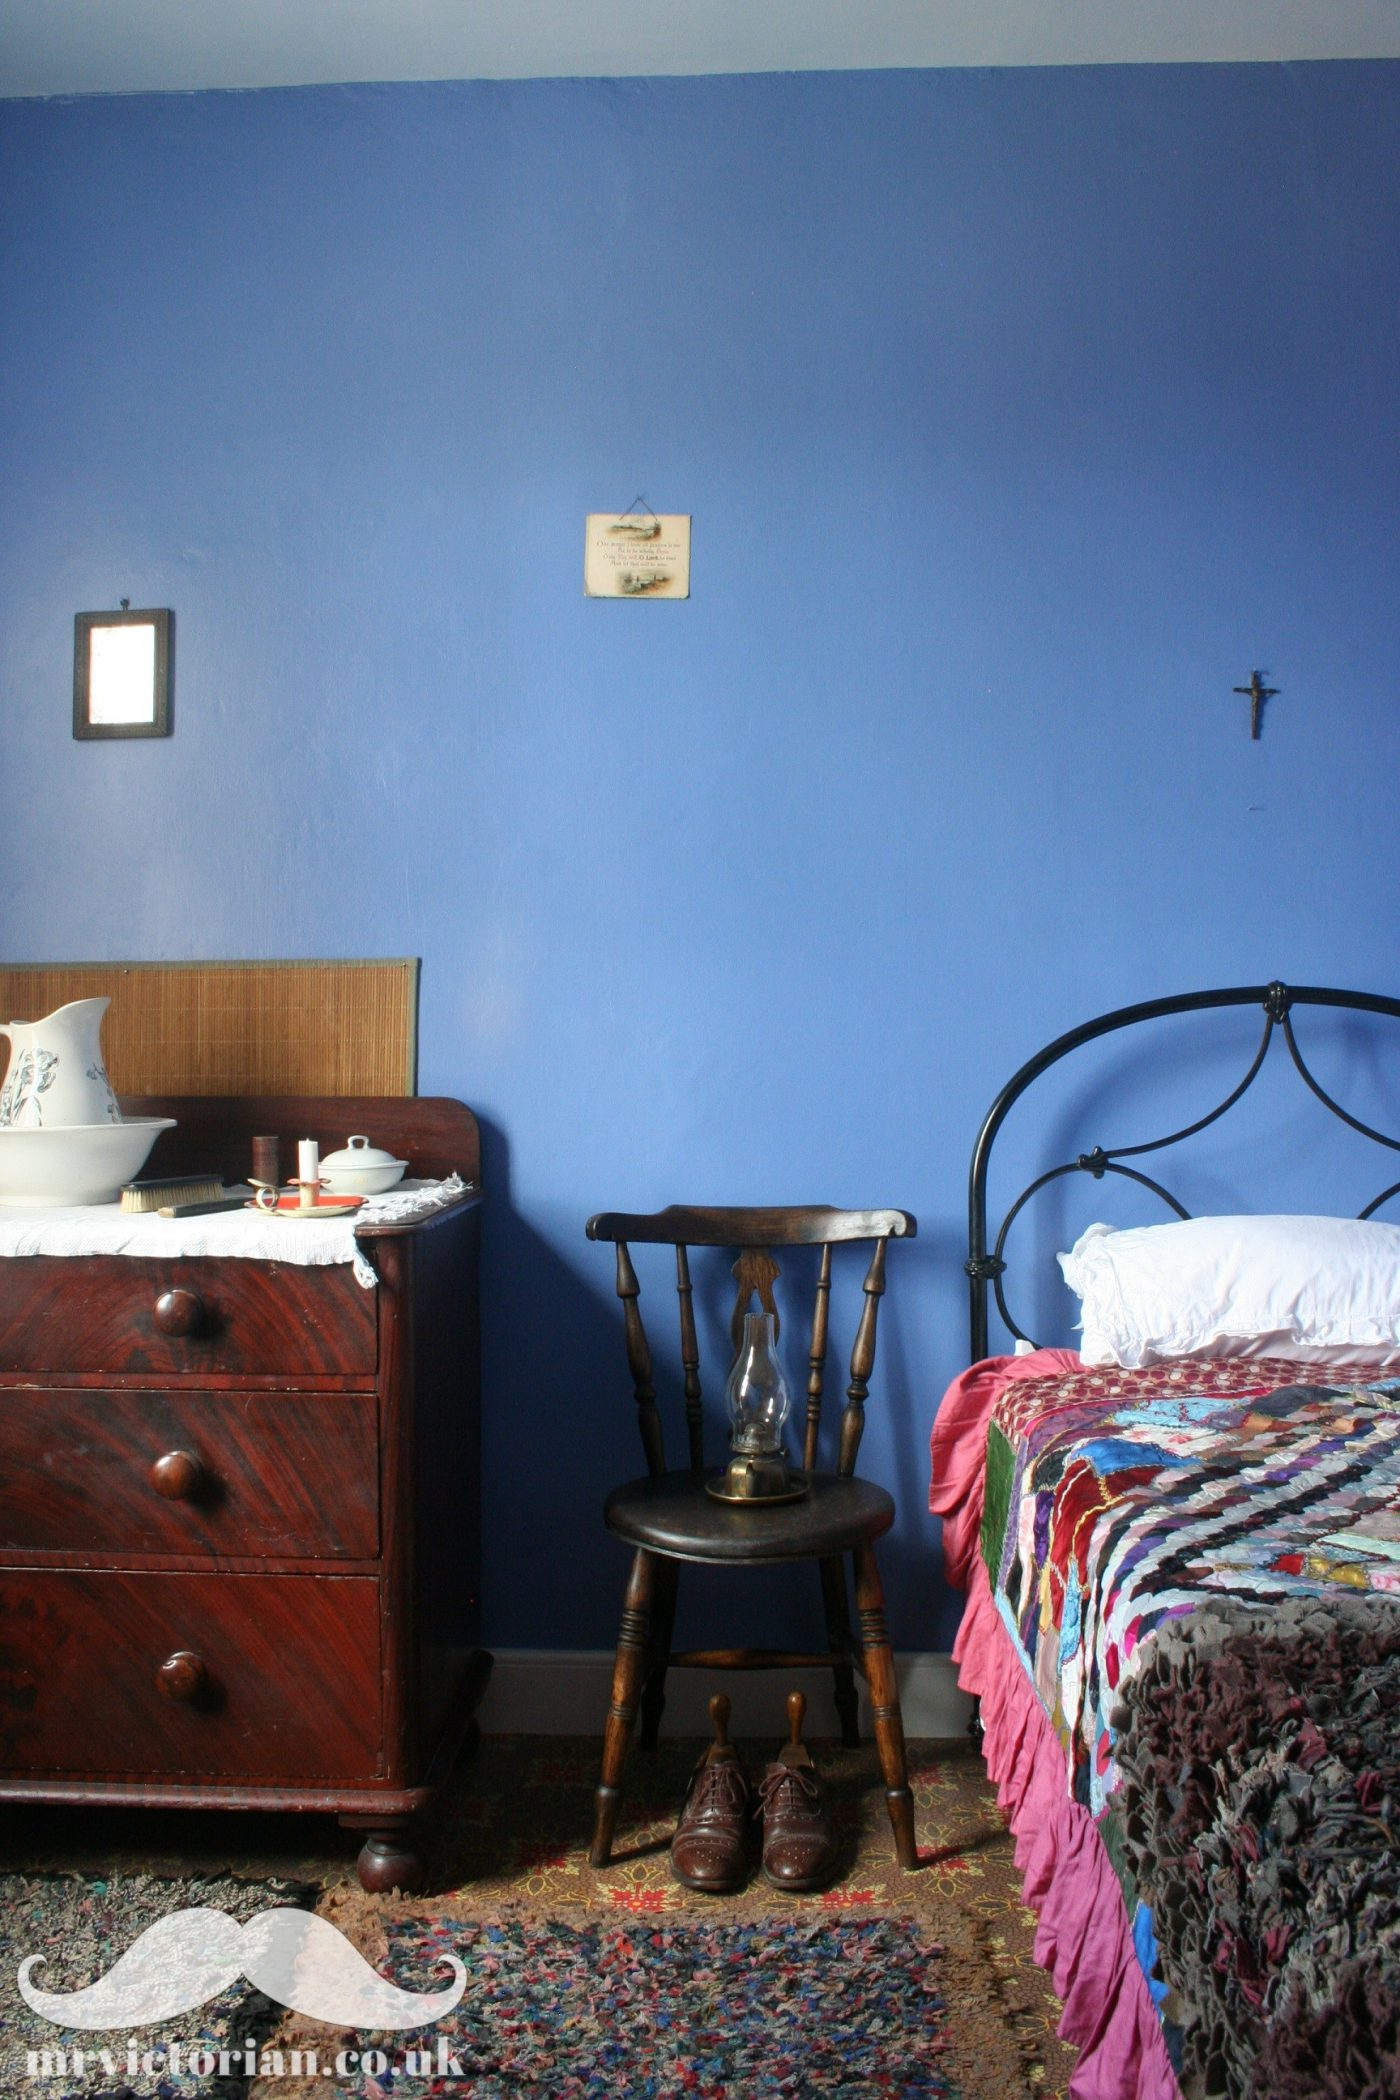 Victorian bedroom blue wall restoration historic paint analysis